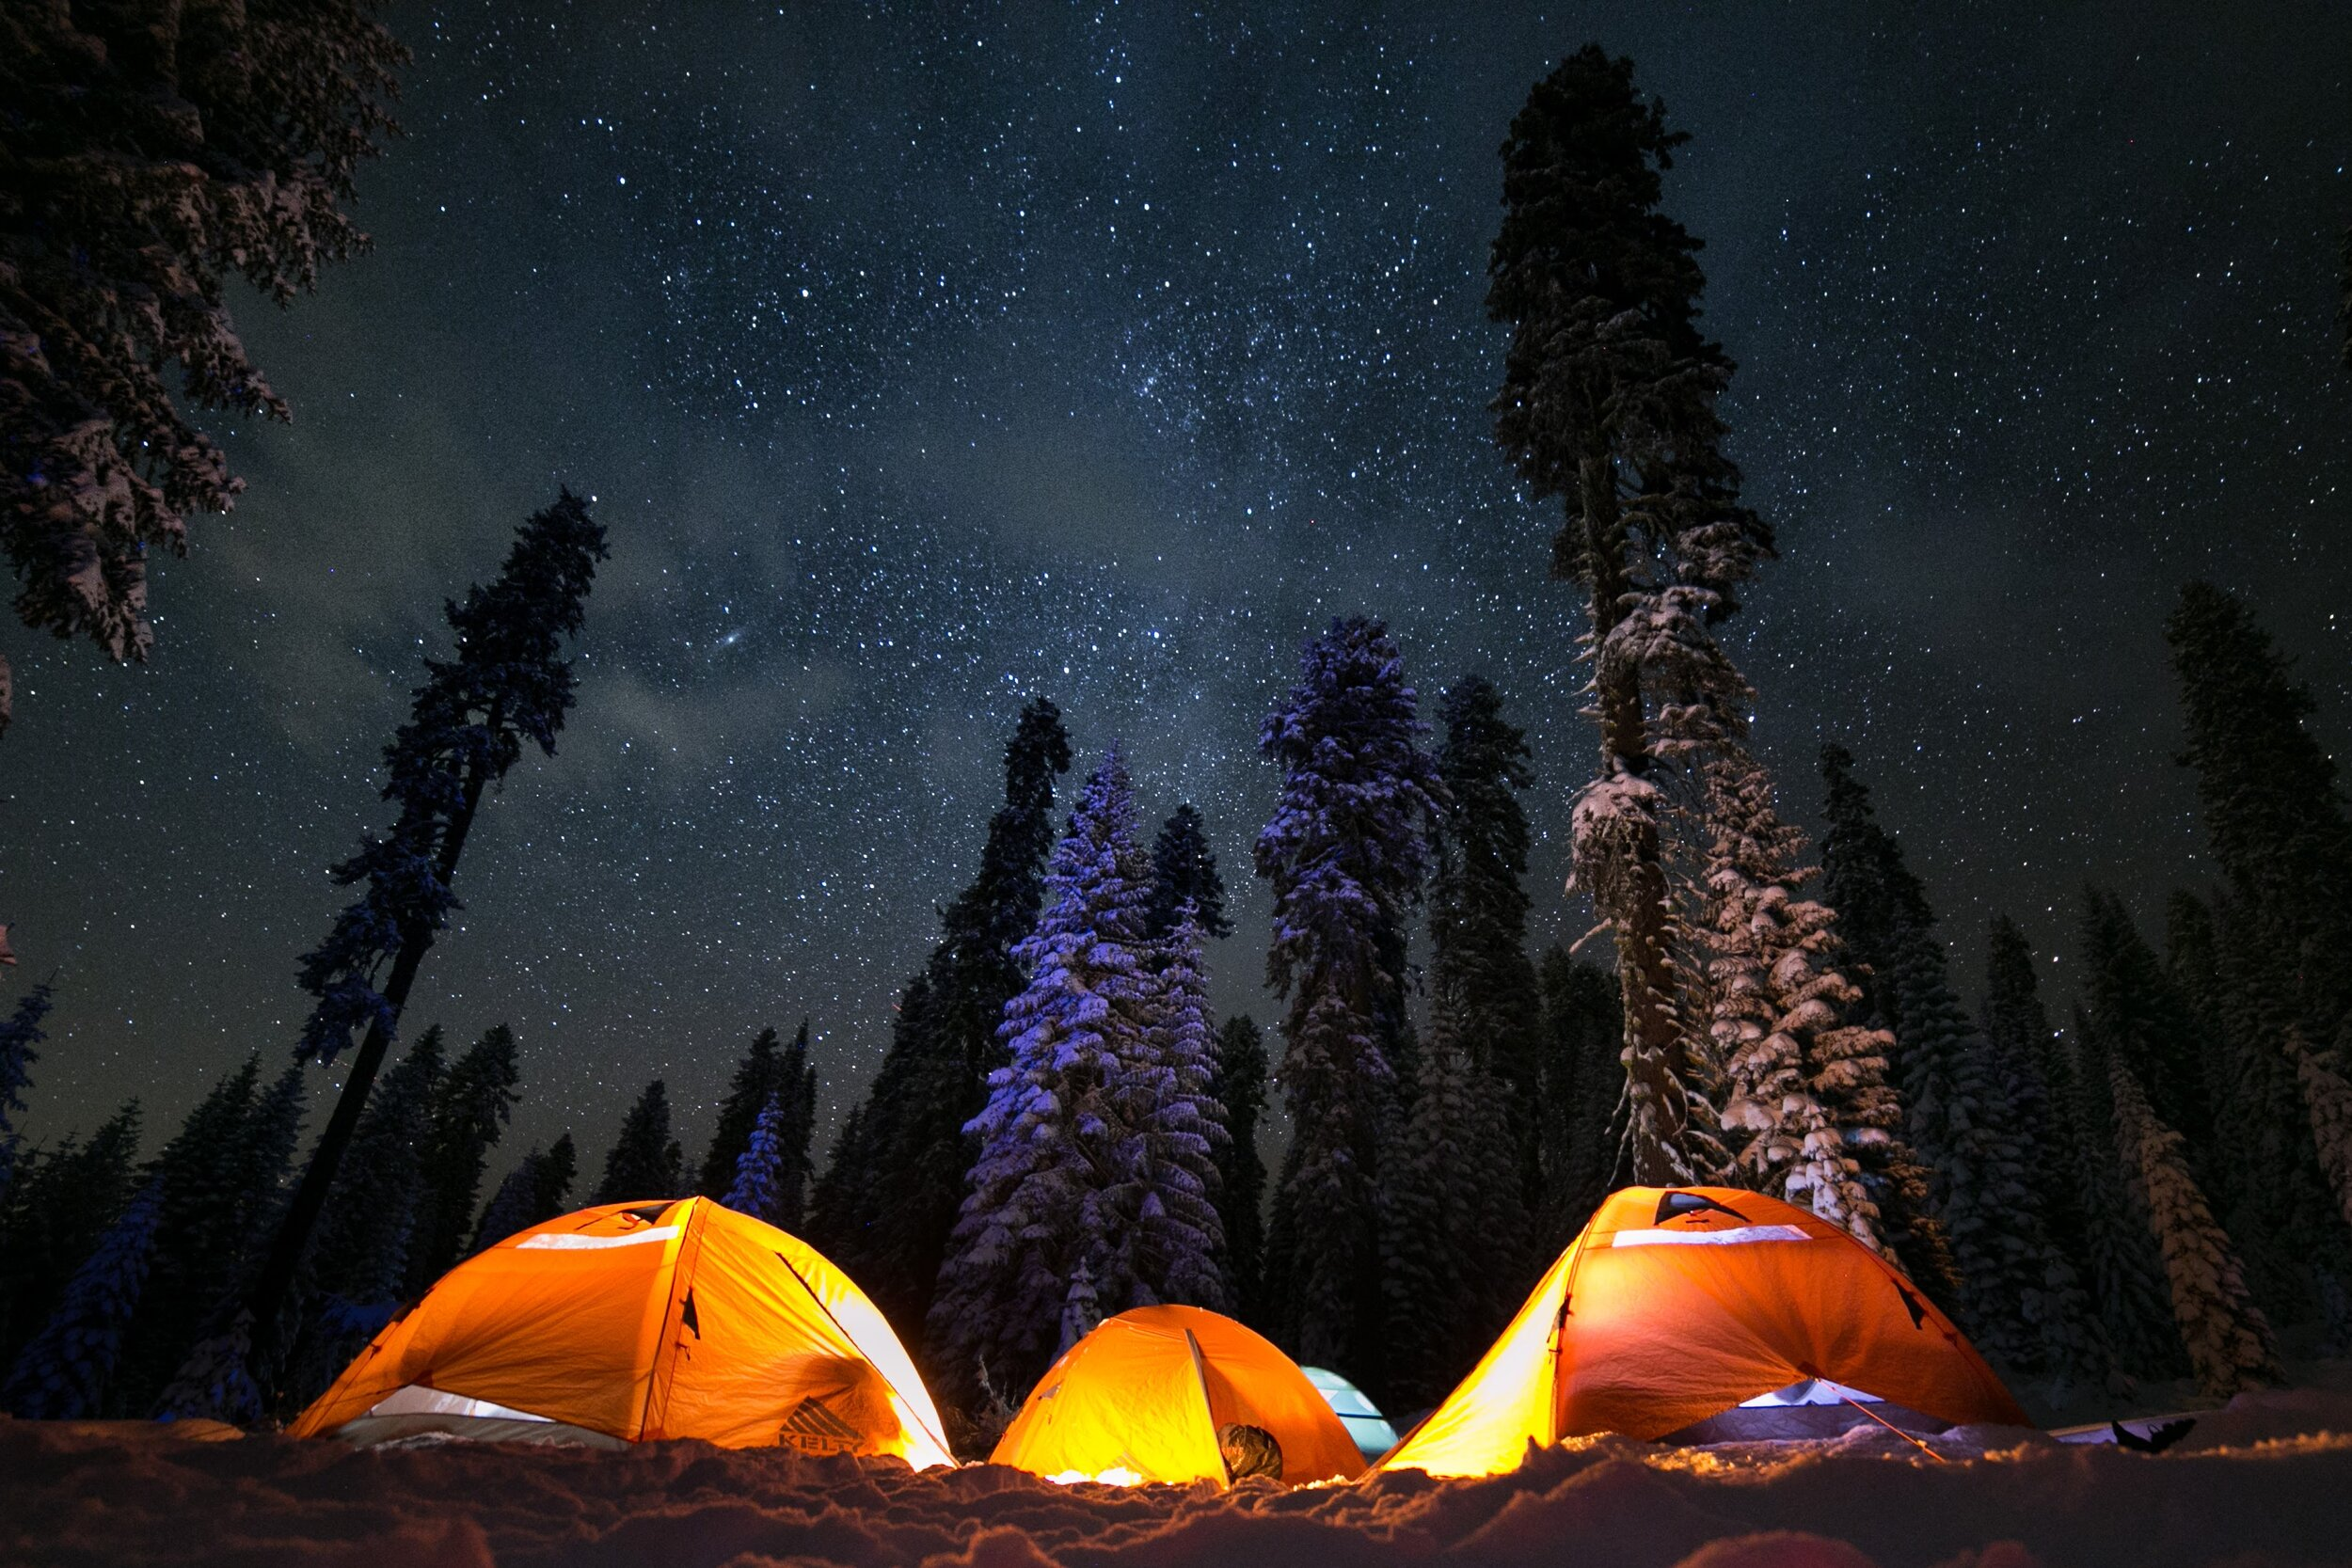 Mentor/Mentee Camping Trip - Get to bond with your mentor/mentee during an outdoor experience with your fellow members!